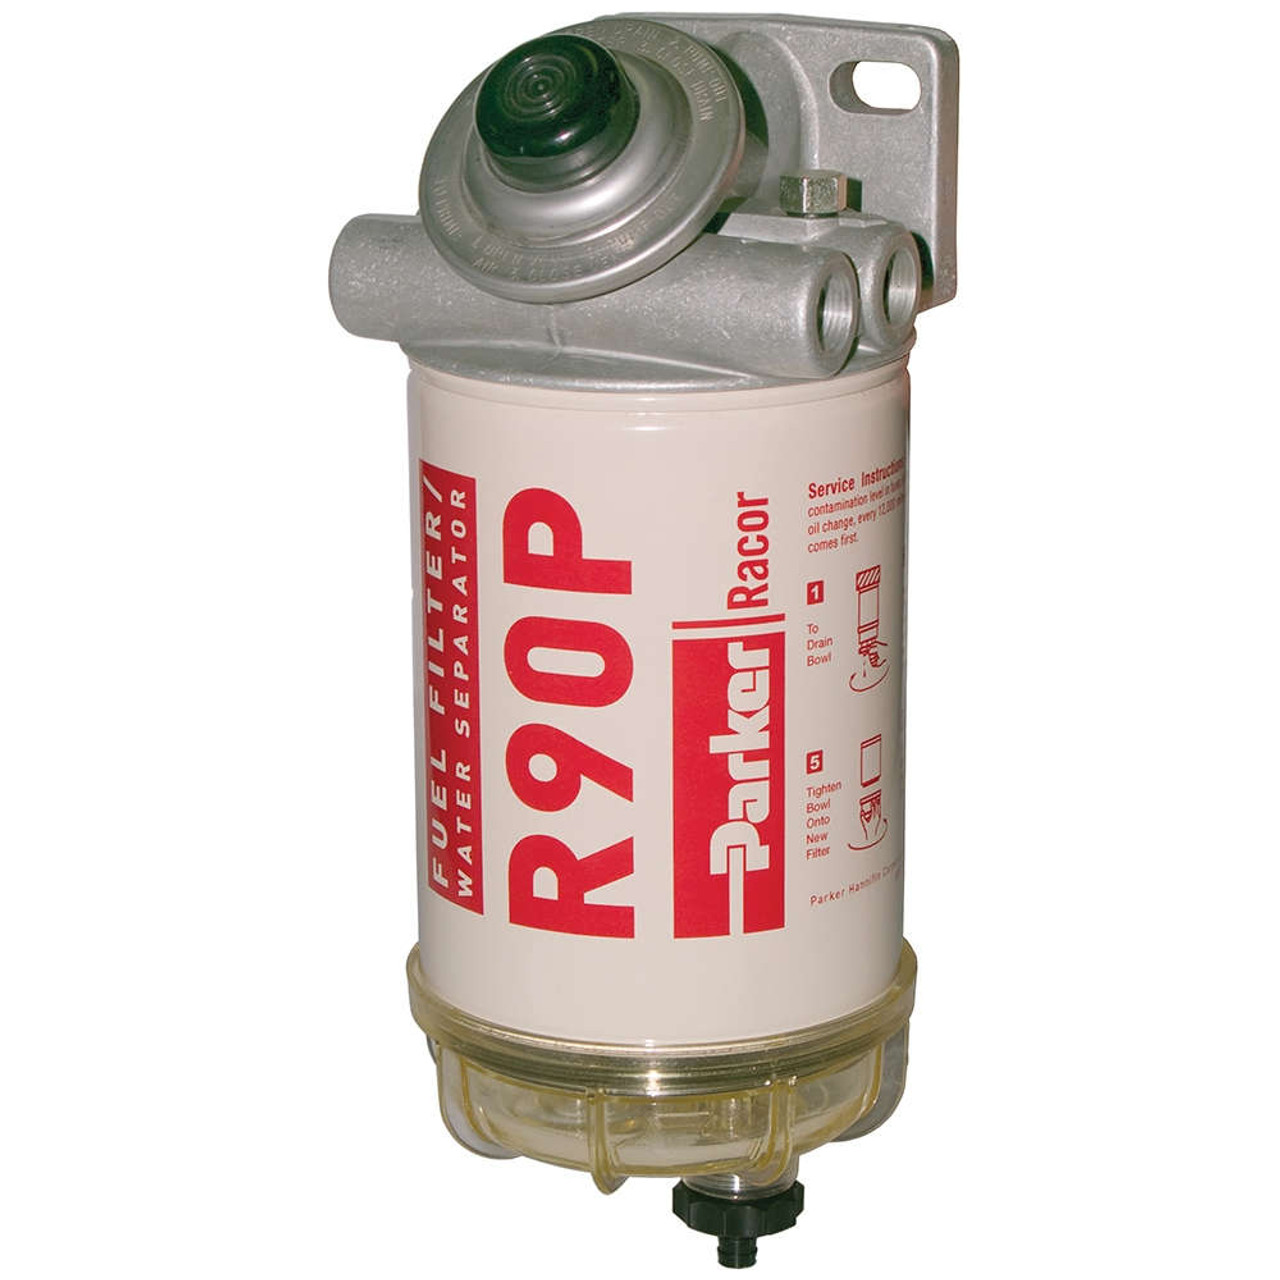 racor 400 series 90 gph diesel spin on fuel filter 30 micron 6 [ 1000 x 1000 Pixel ]